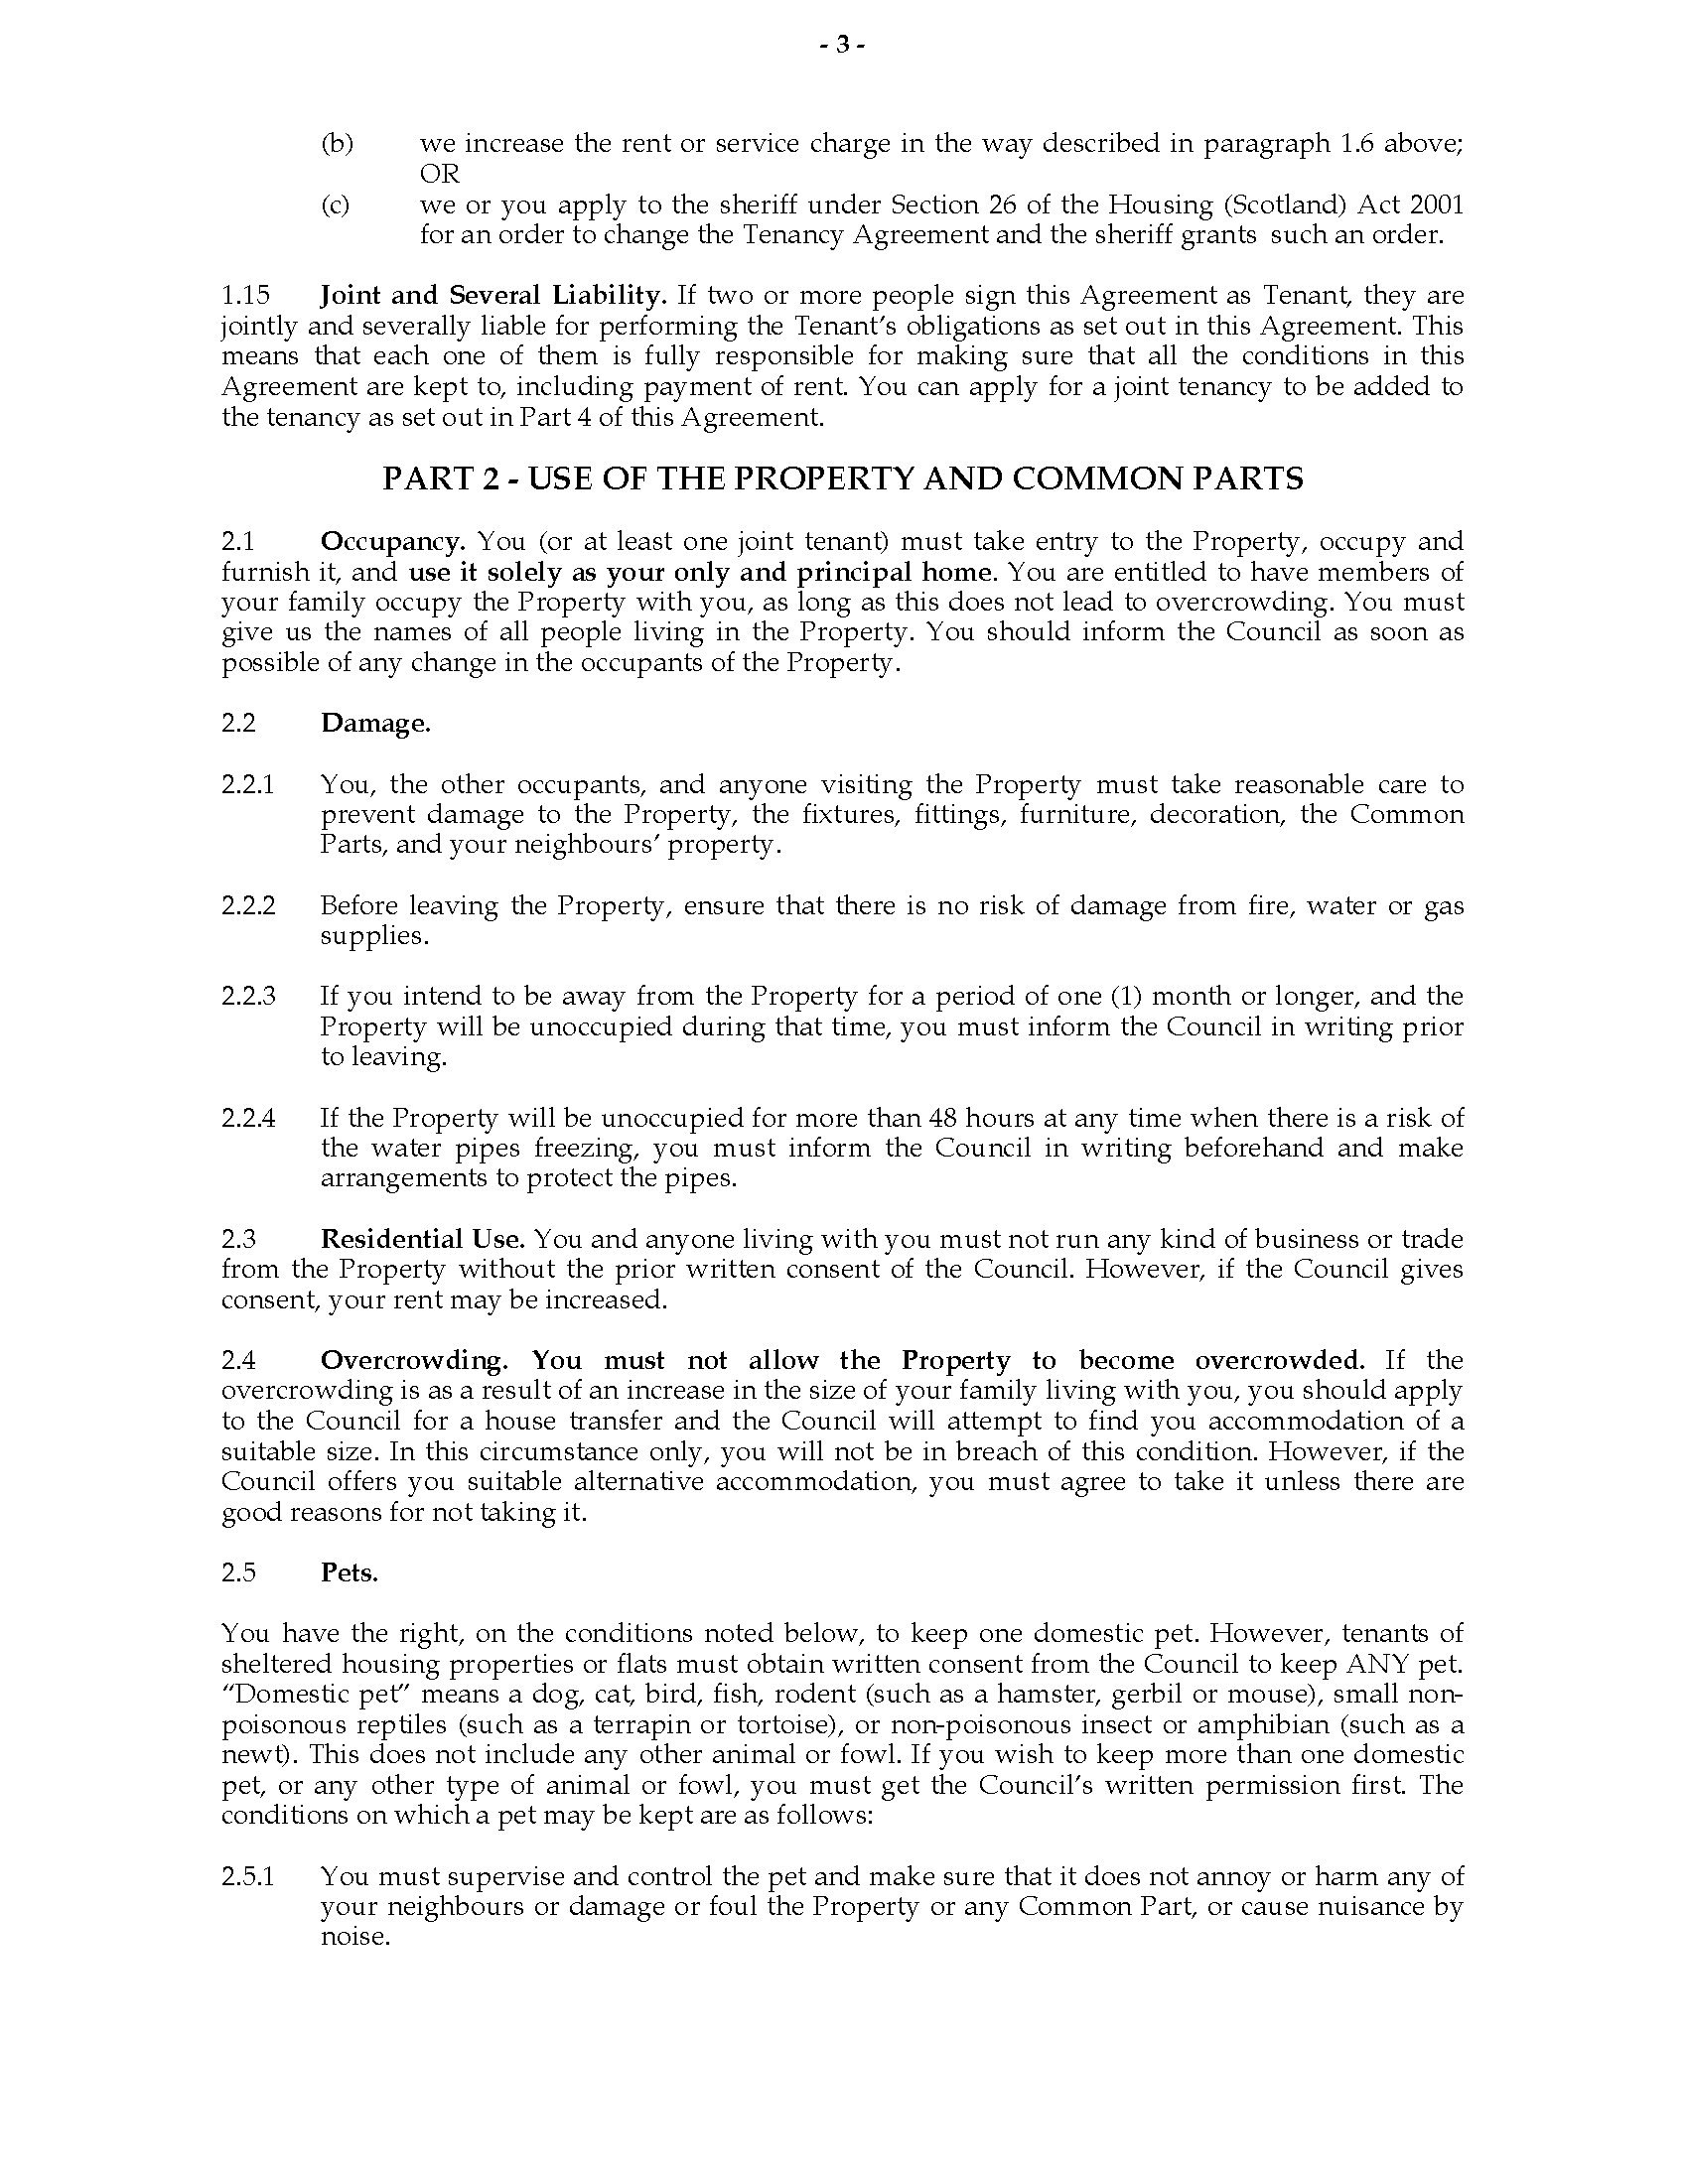 Scottish Secure Tenancy Agreement  Legal Forms And Business Intended For Scottish Secure Tenancy Agreement Template